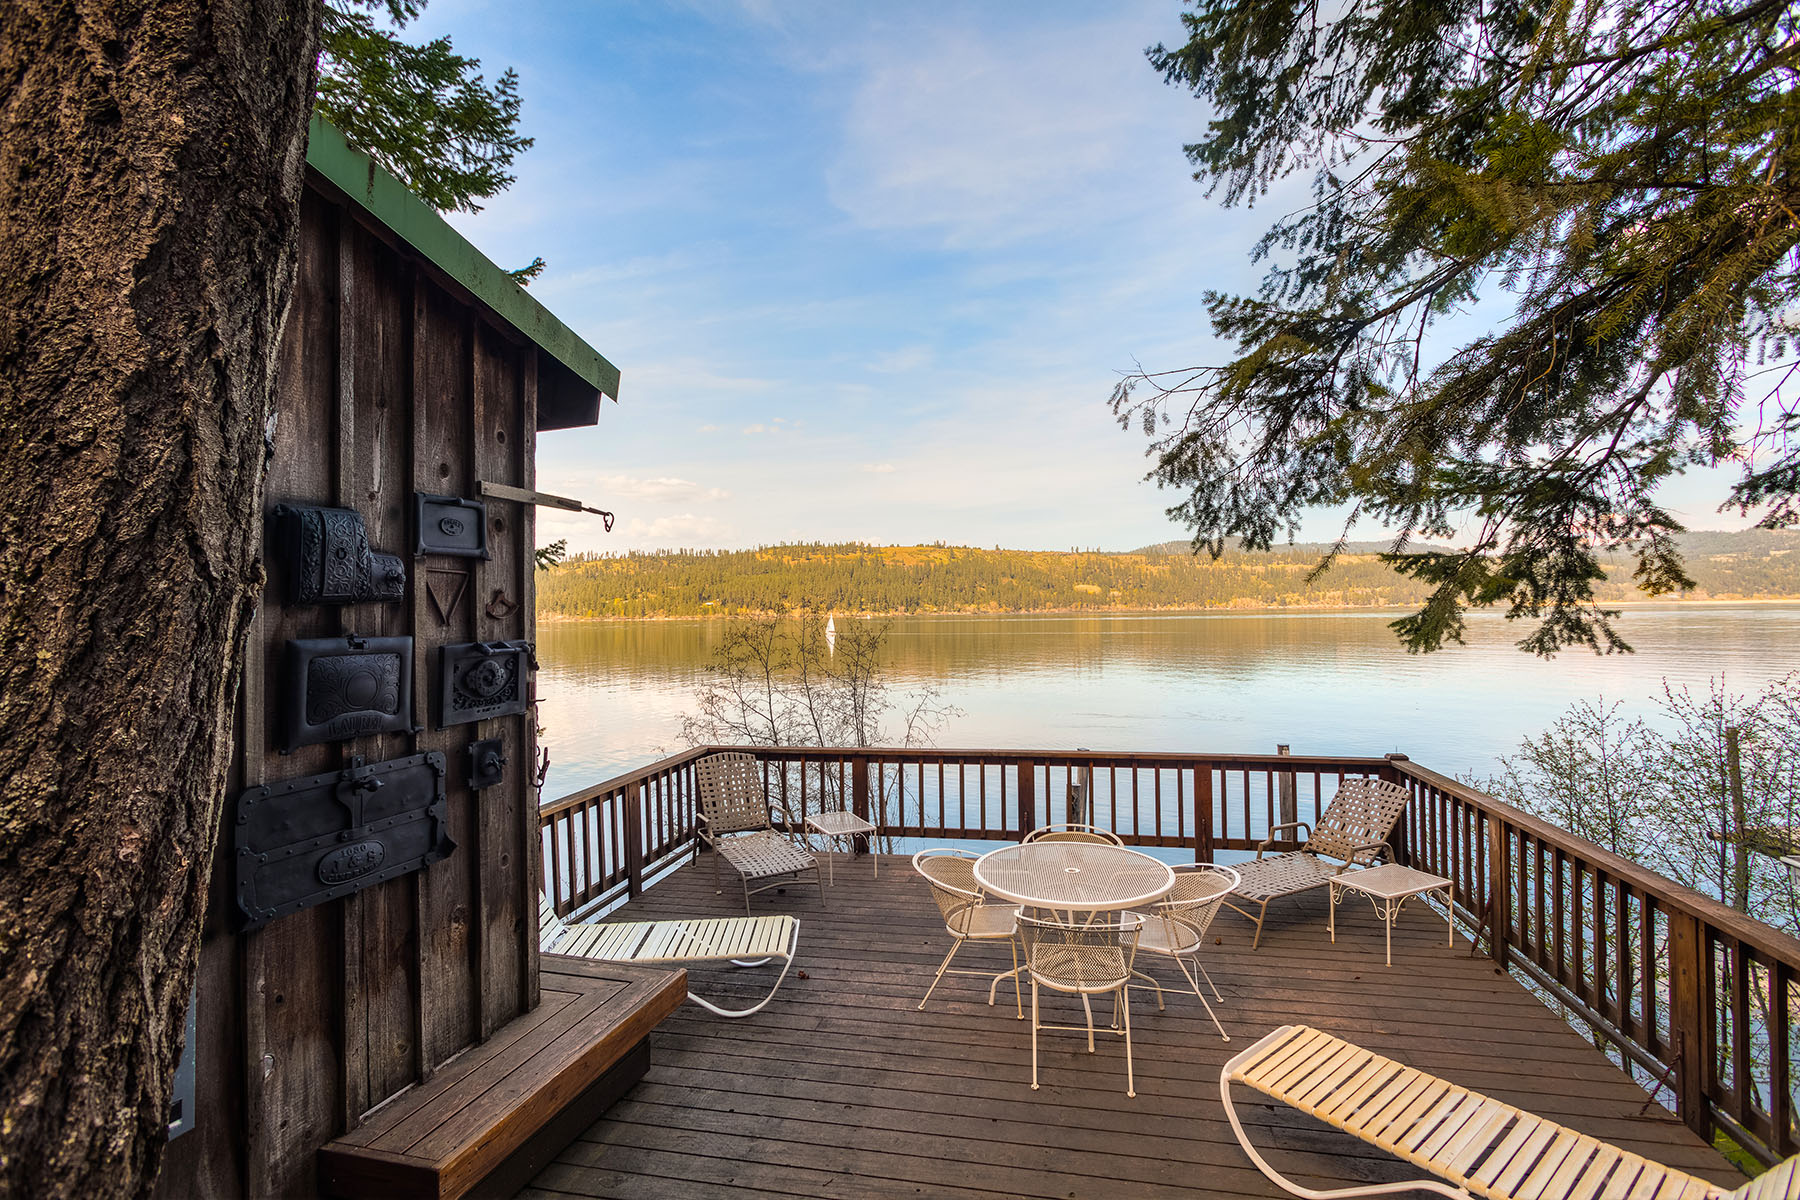 Property For Sale at Rustic Cabin on Lake Coeur d'Alene